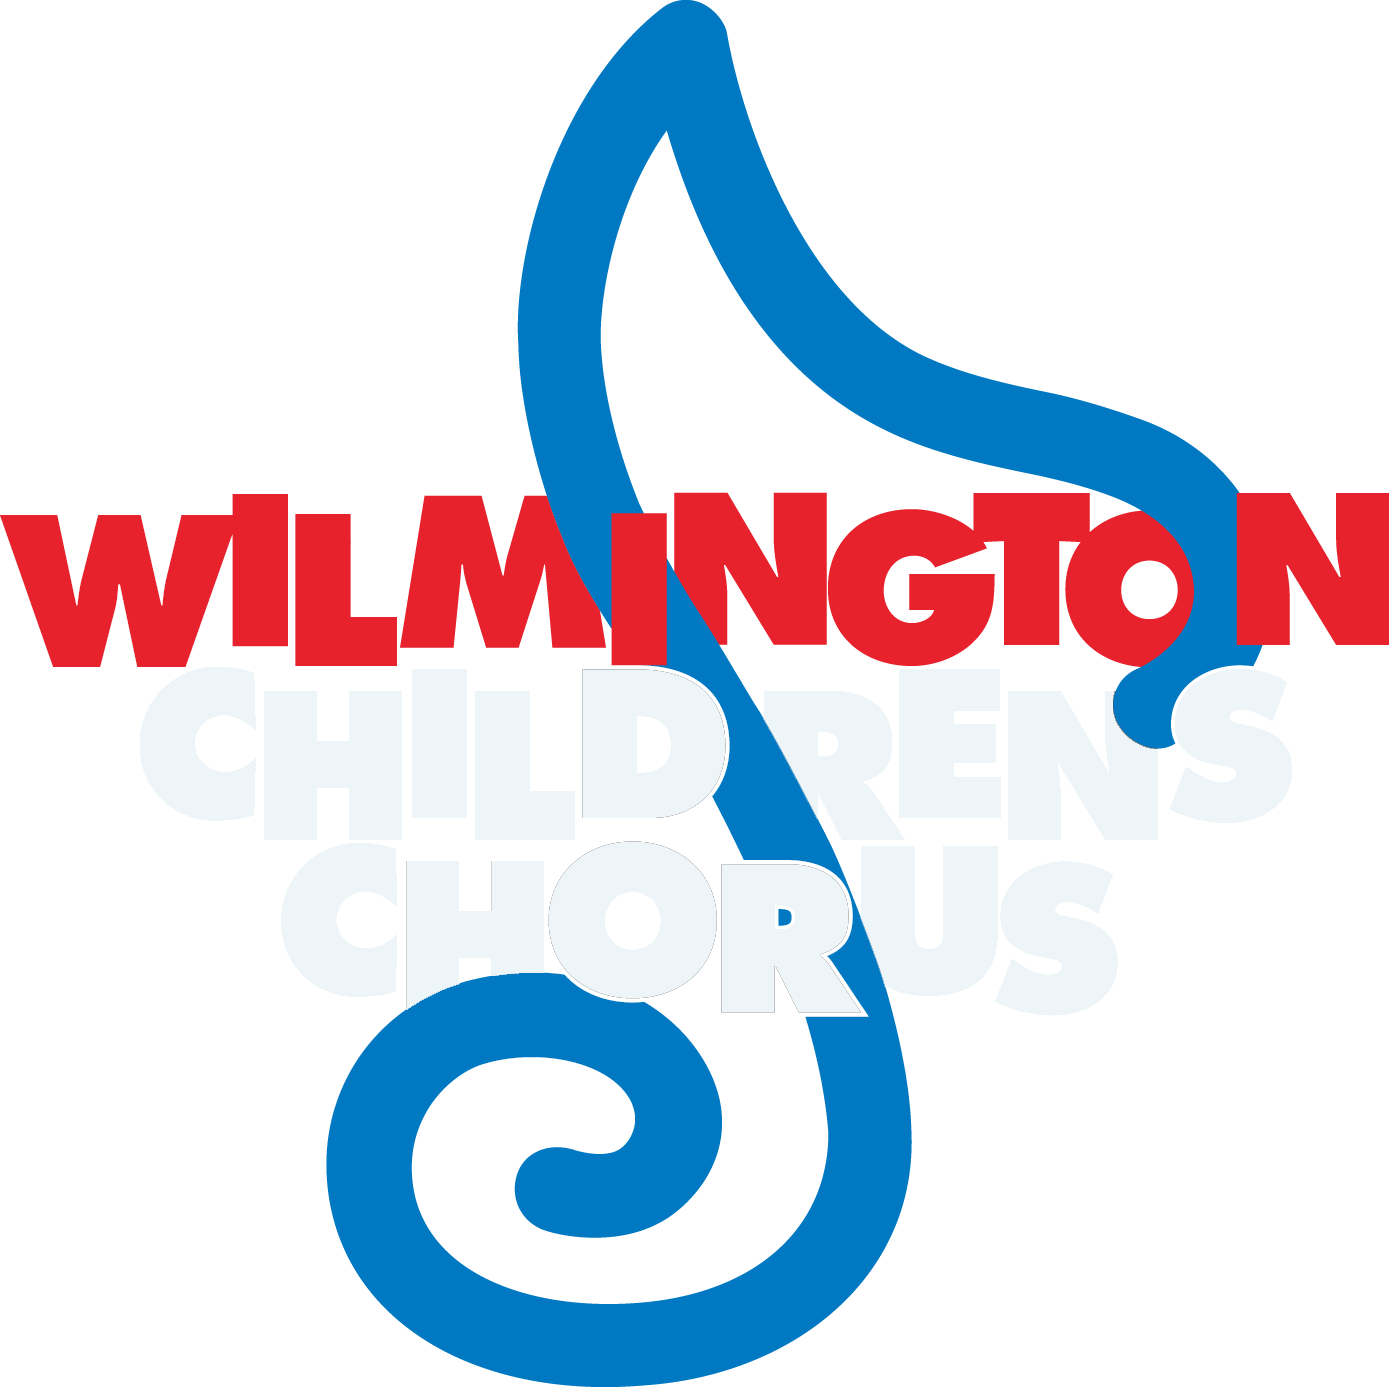 Wilmington Children's Chorus Logo